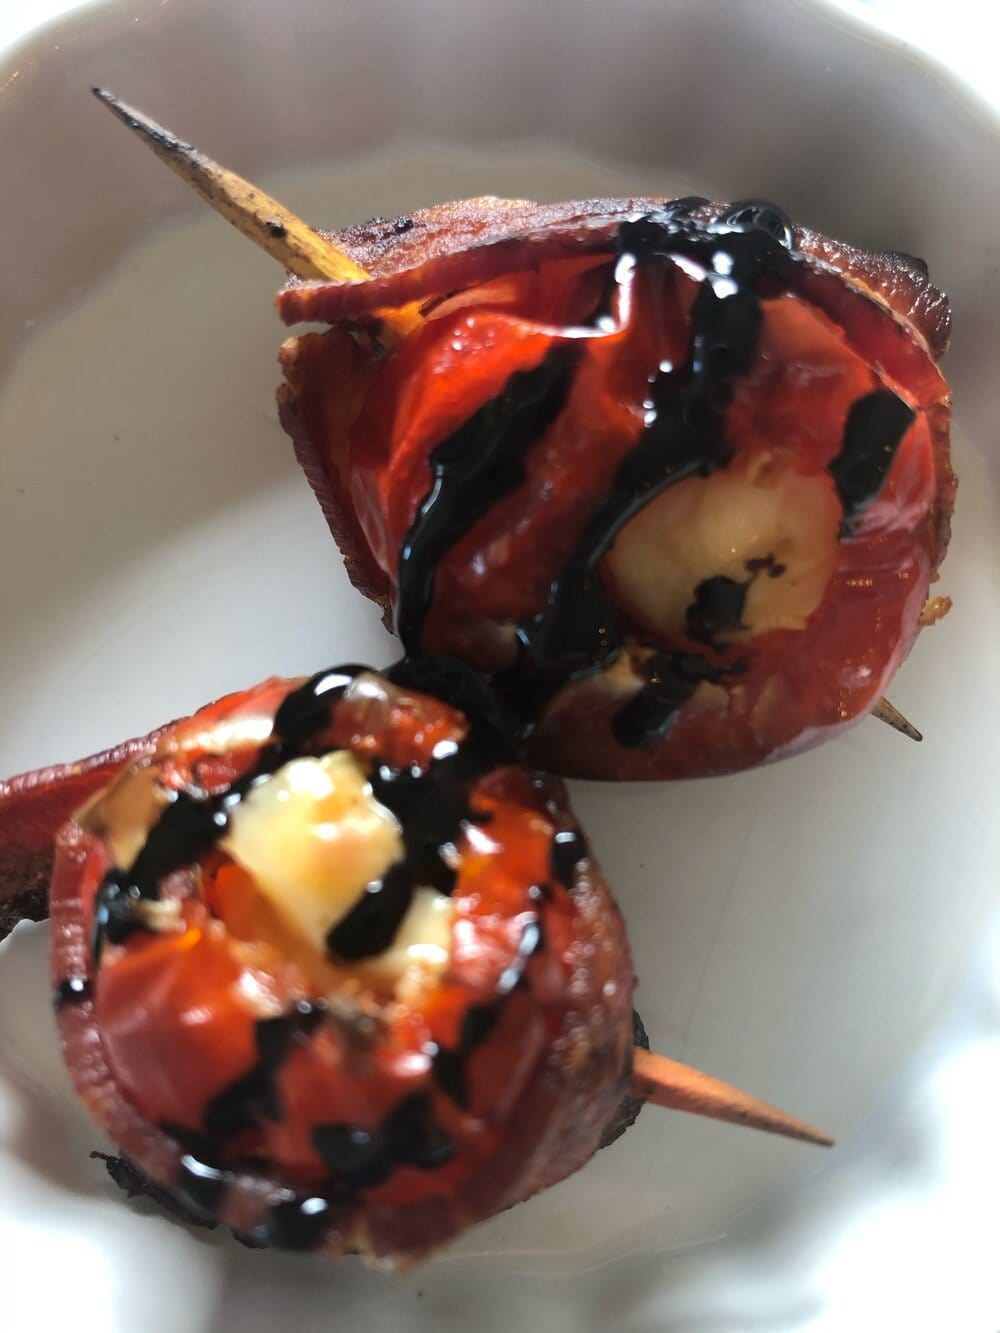 Missouri Girl Peppadew Peppers. Sweet peppadew peppers stuffed with a creamy cream cheese, wrapped in crispy bacon, and topped with a balsamic reduction. So good.